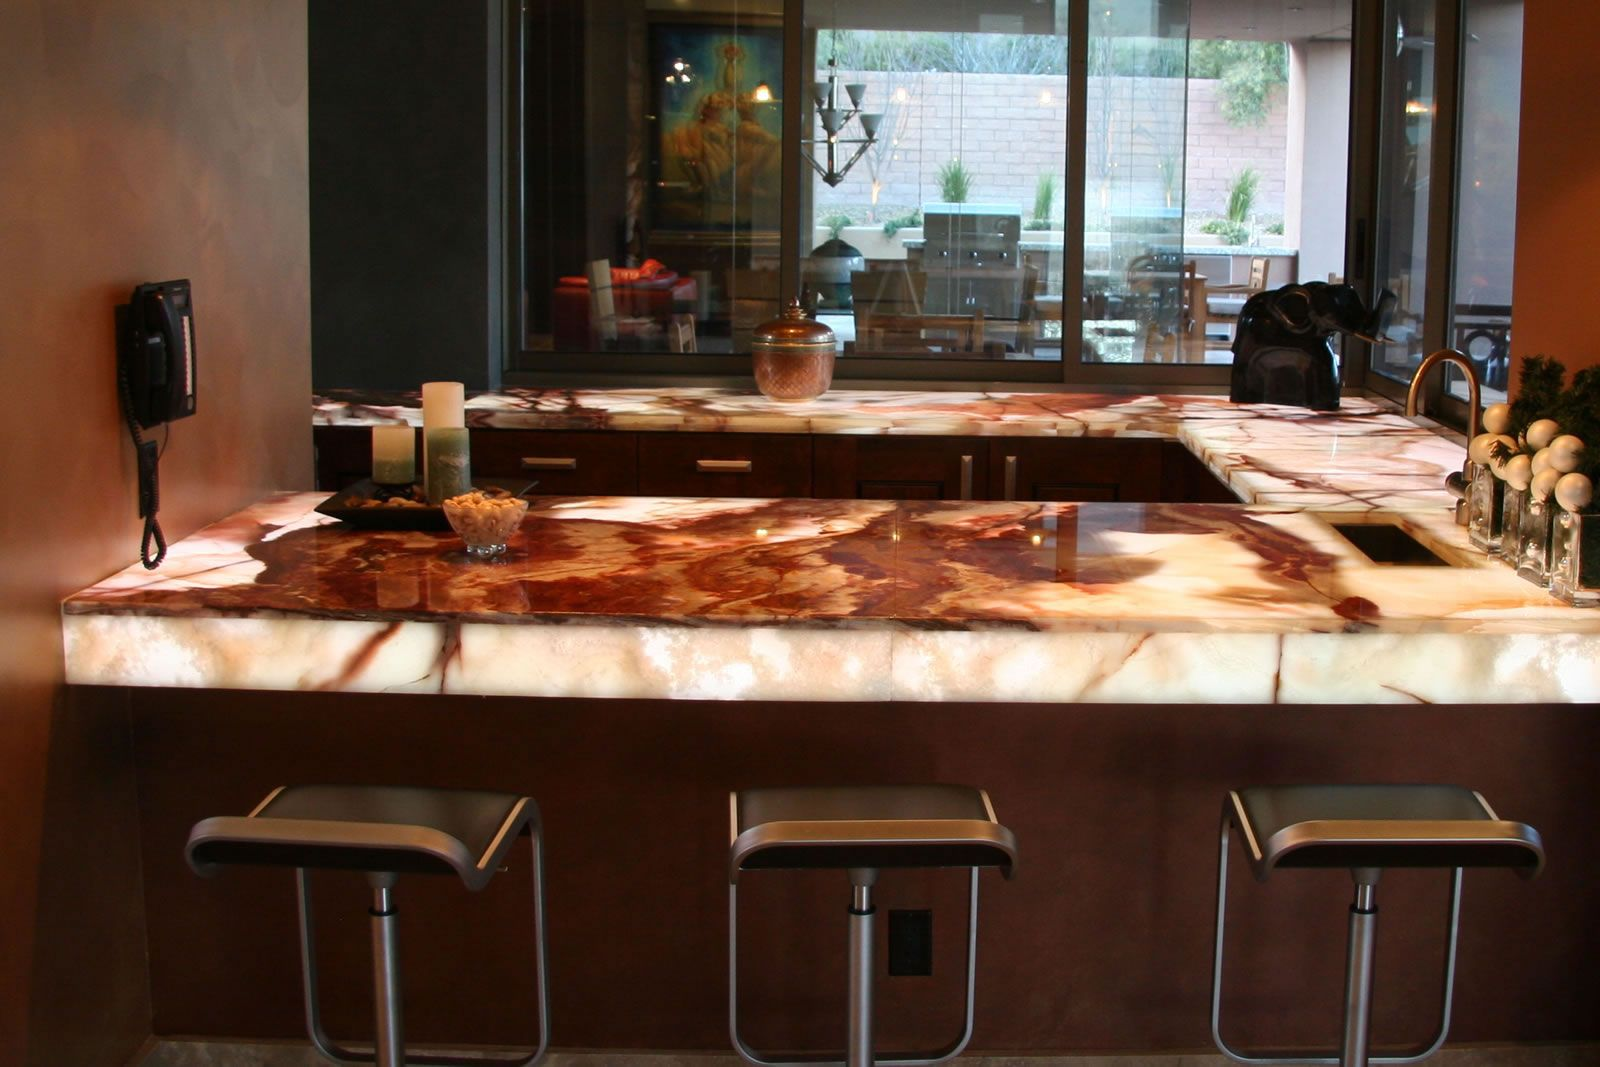 how to light onyx countertop | onyx countertop project | booth